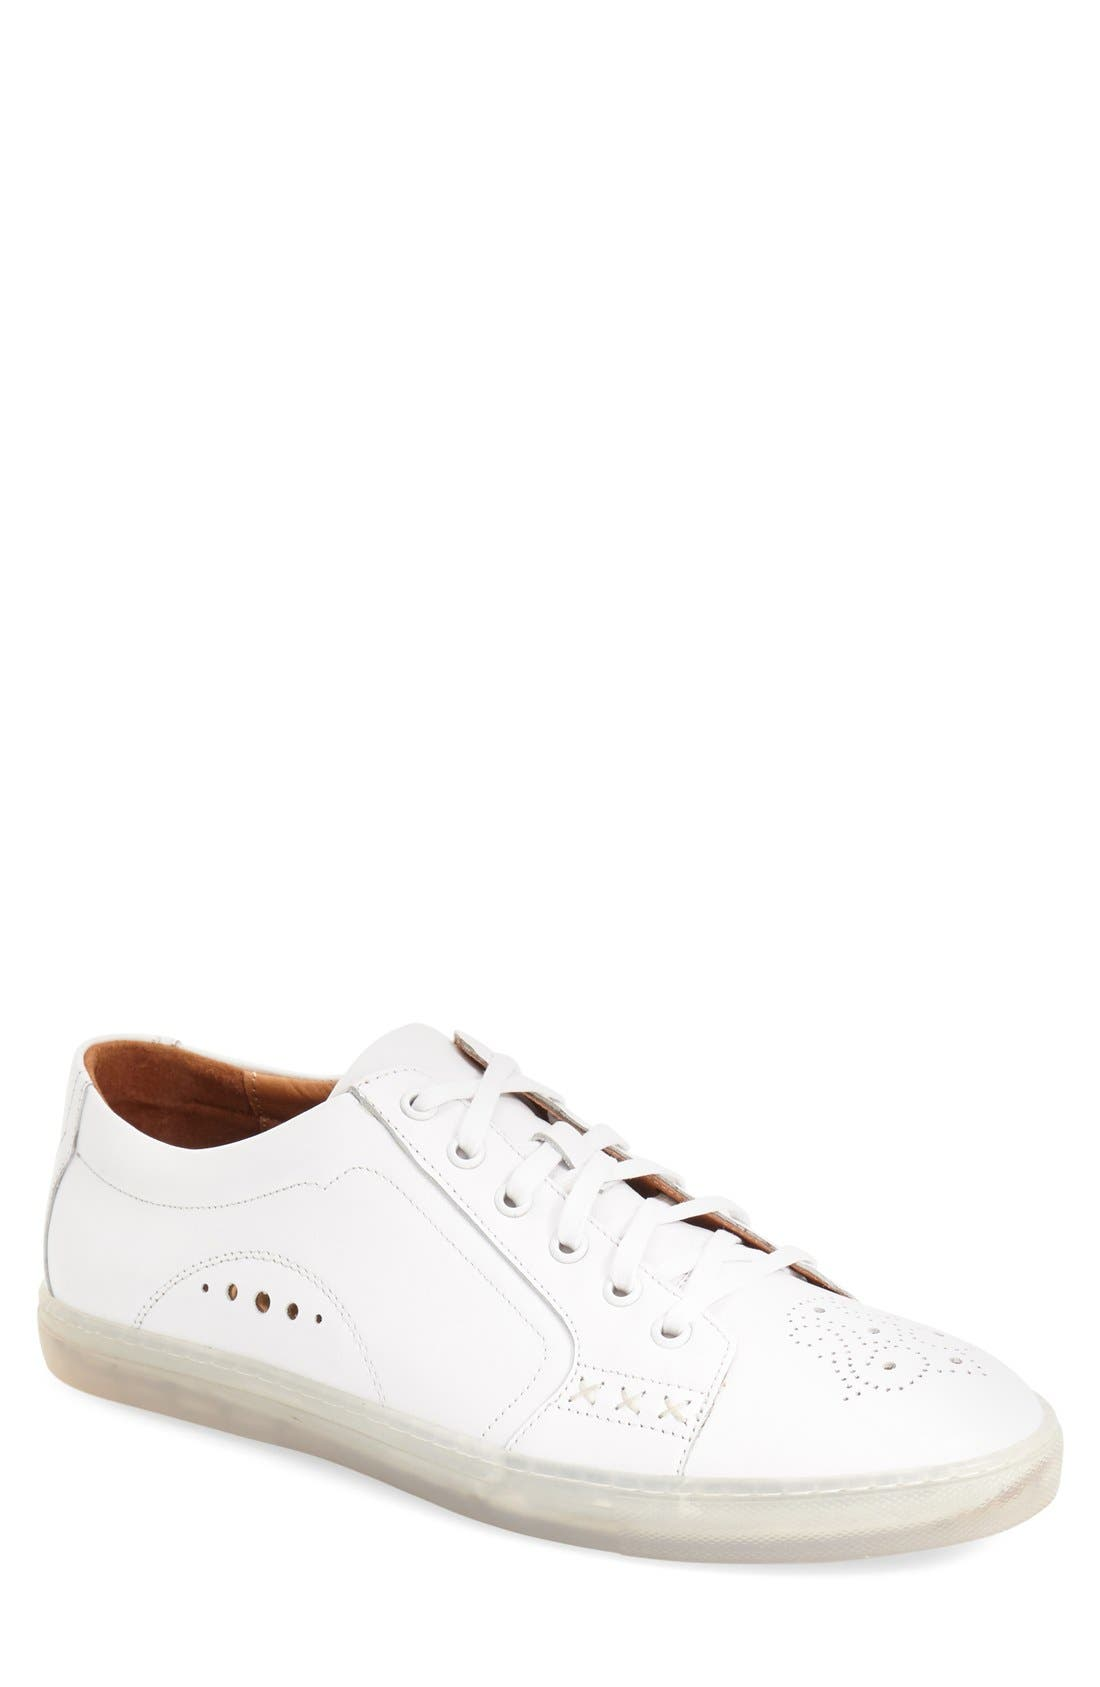 'Drum' Lace-Up Sneaker,                         Main,                         color,